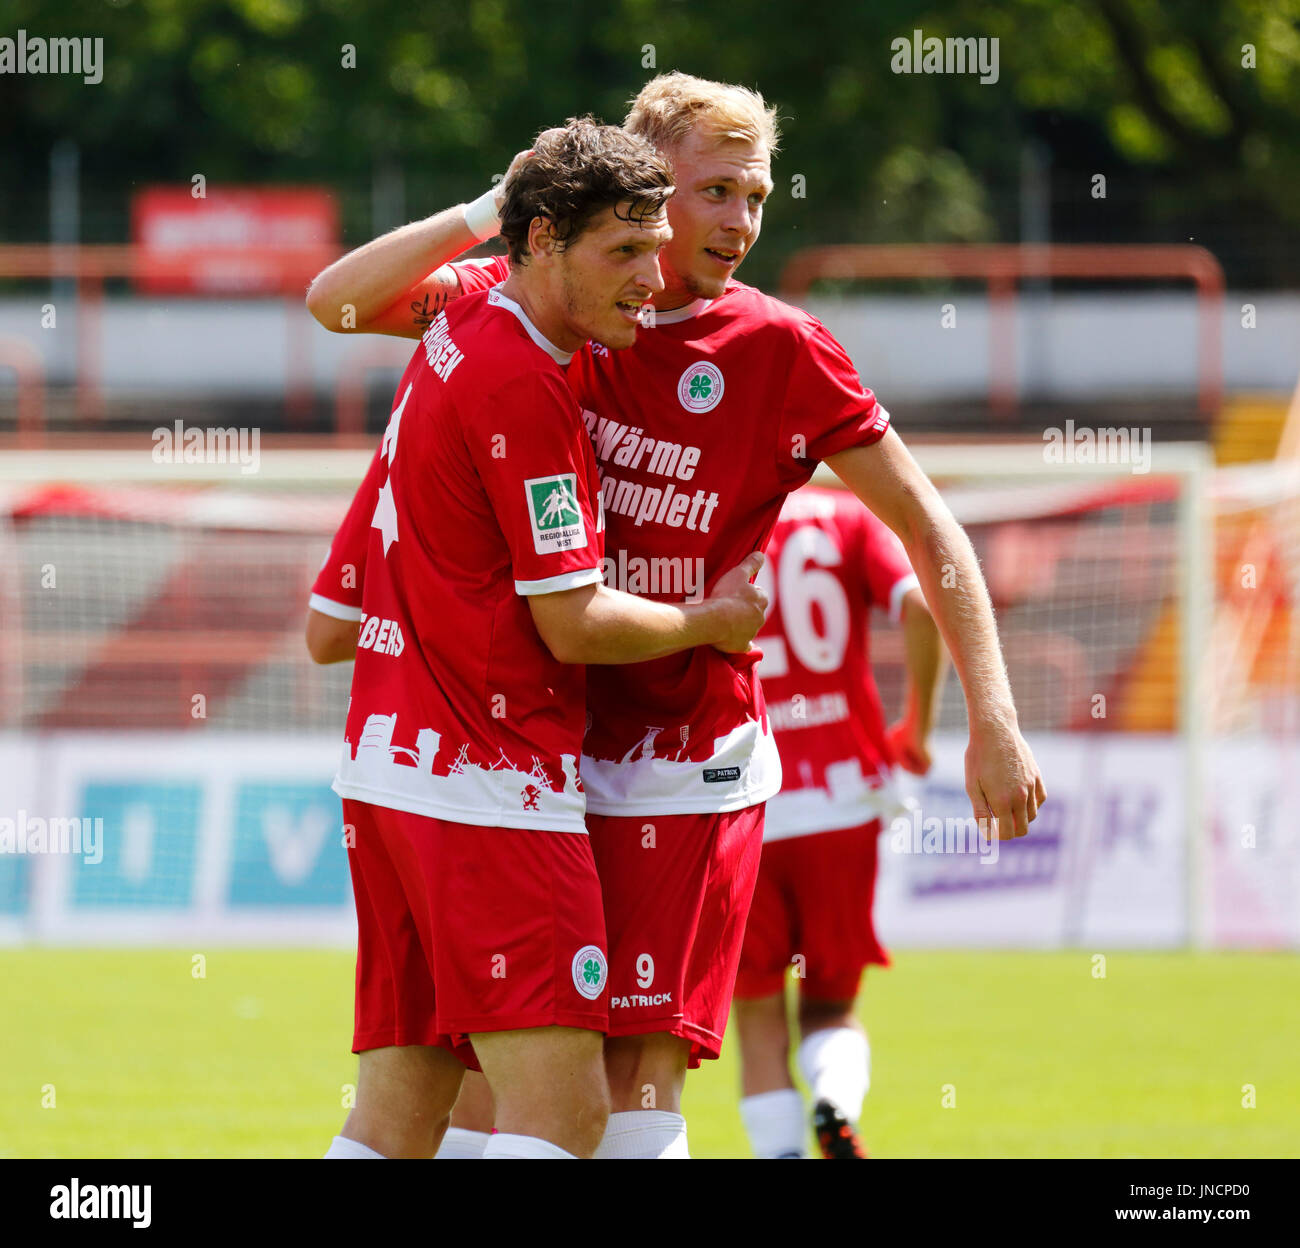 sports,football,Regional League West,2017/2018,Rot Weiss Oberhausen vs SV Westfalia Rhynern 2:1,Stadium Niederrhein in Oberhausen,rejoicing at the 2:1 winning goal,Robert Flessers (RWO) left and goal scorer Philipp Goedde (RWO) - Stock Image